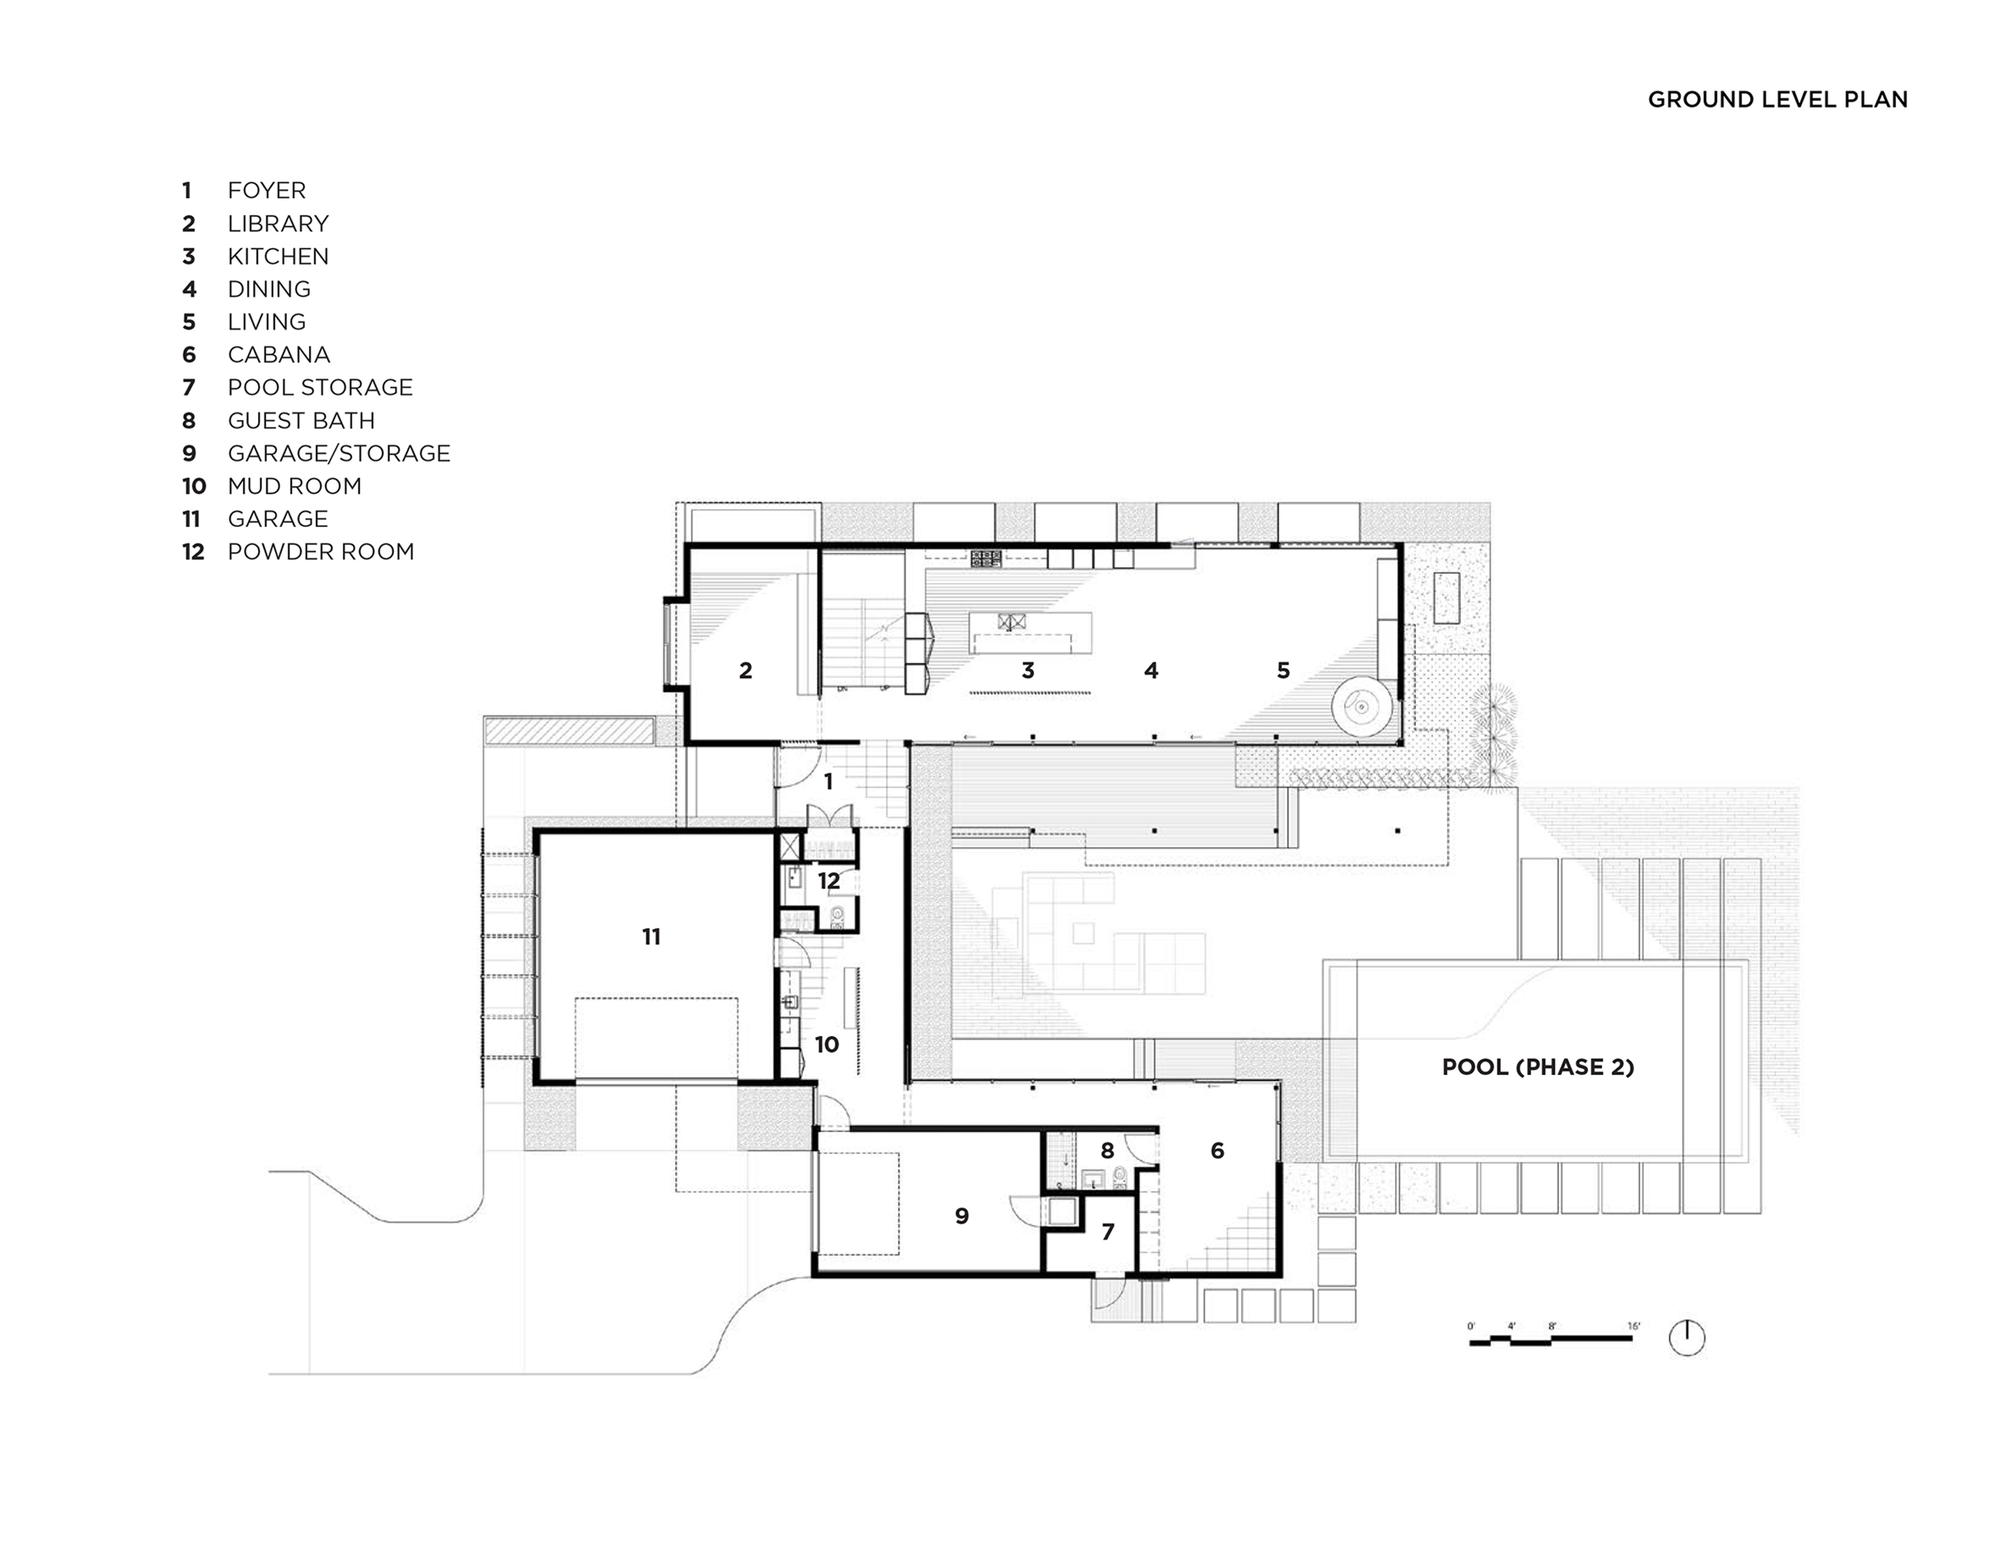 baulinder-haus-hufft-projects_ground_floor_plan